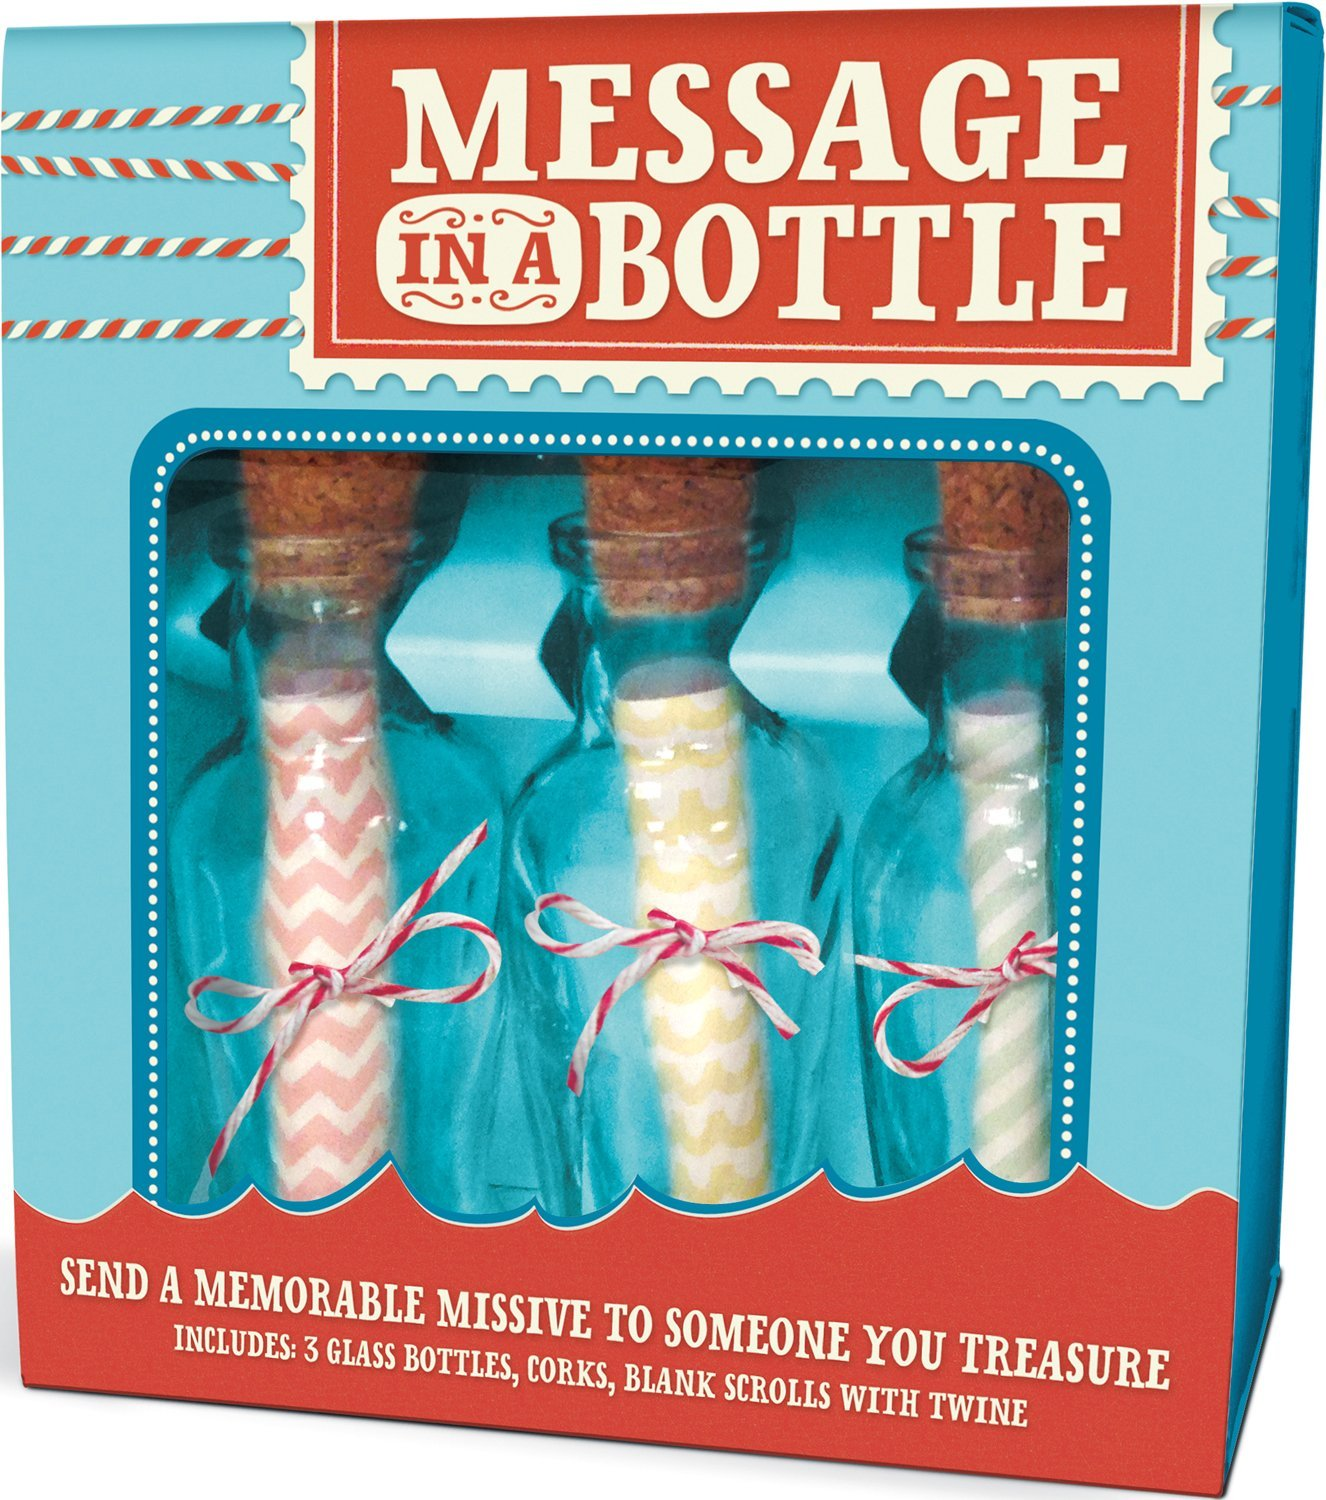 Write them a meaningful message in a bottle. - $